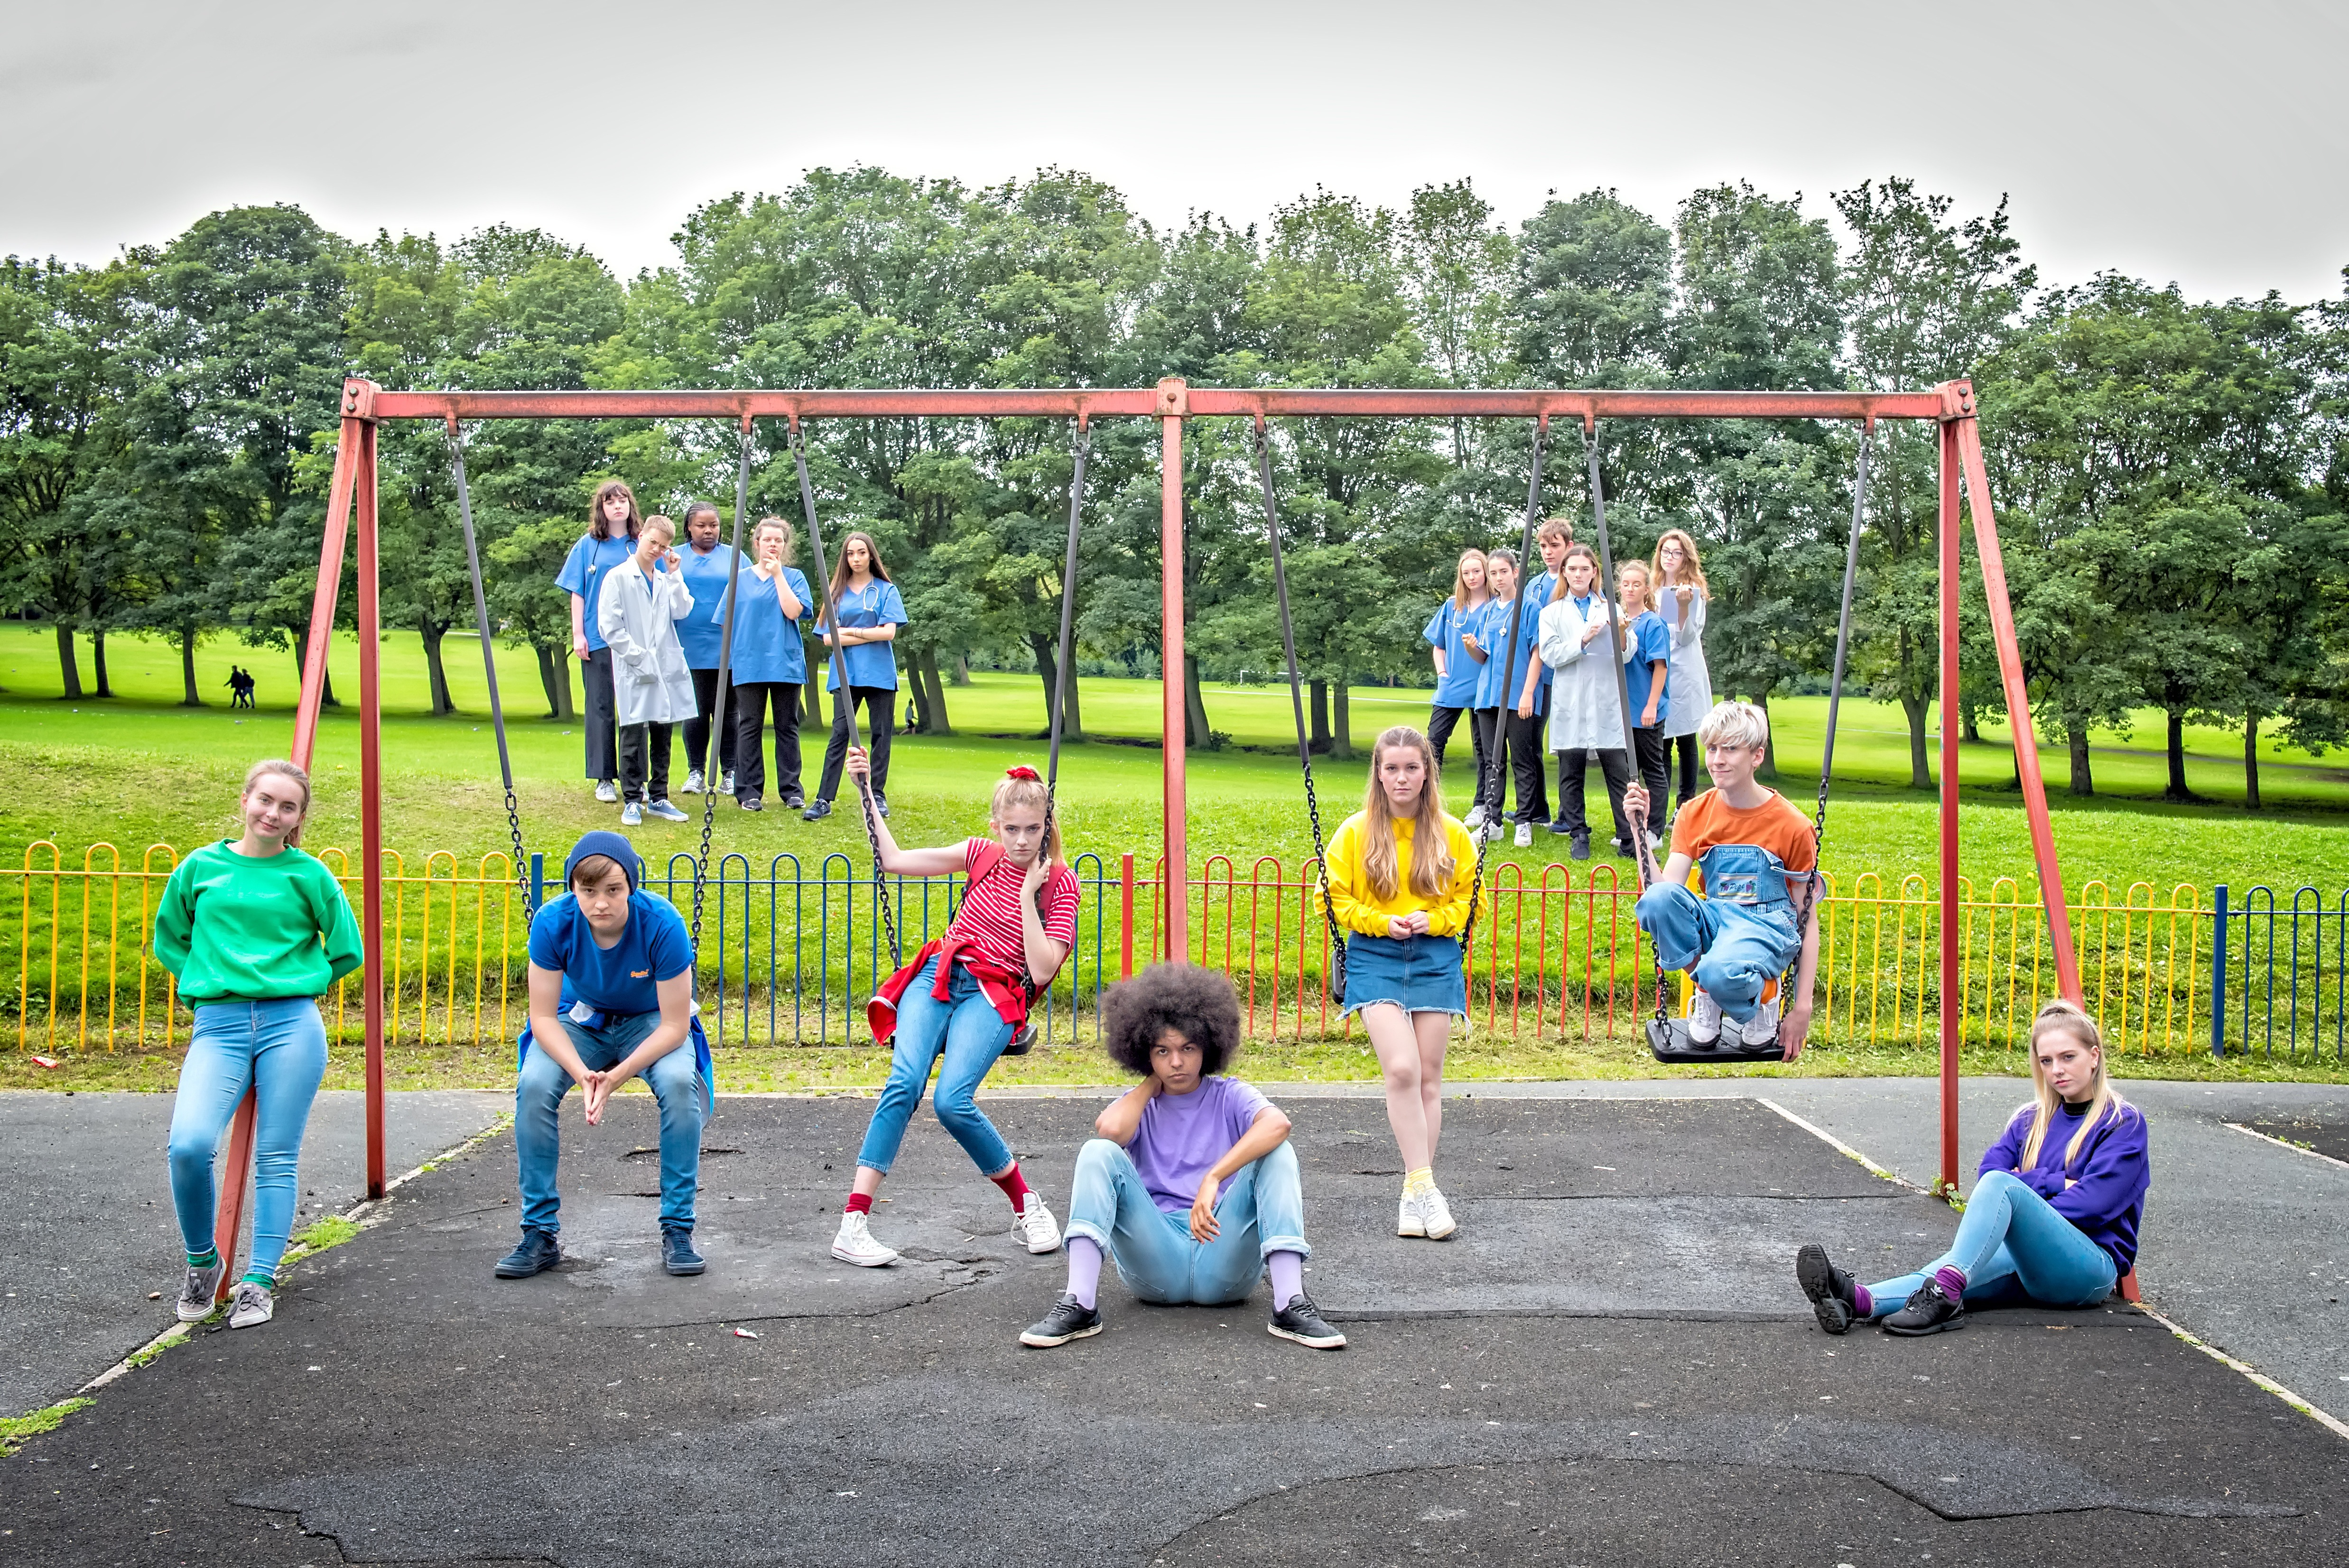 West Yorkshire Playhouse Youth Theatre and Leeds CAMHS join forces to tackle the stigma around mental health